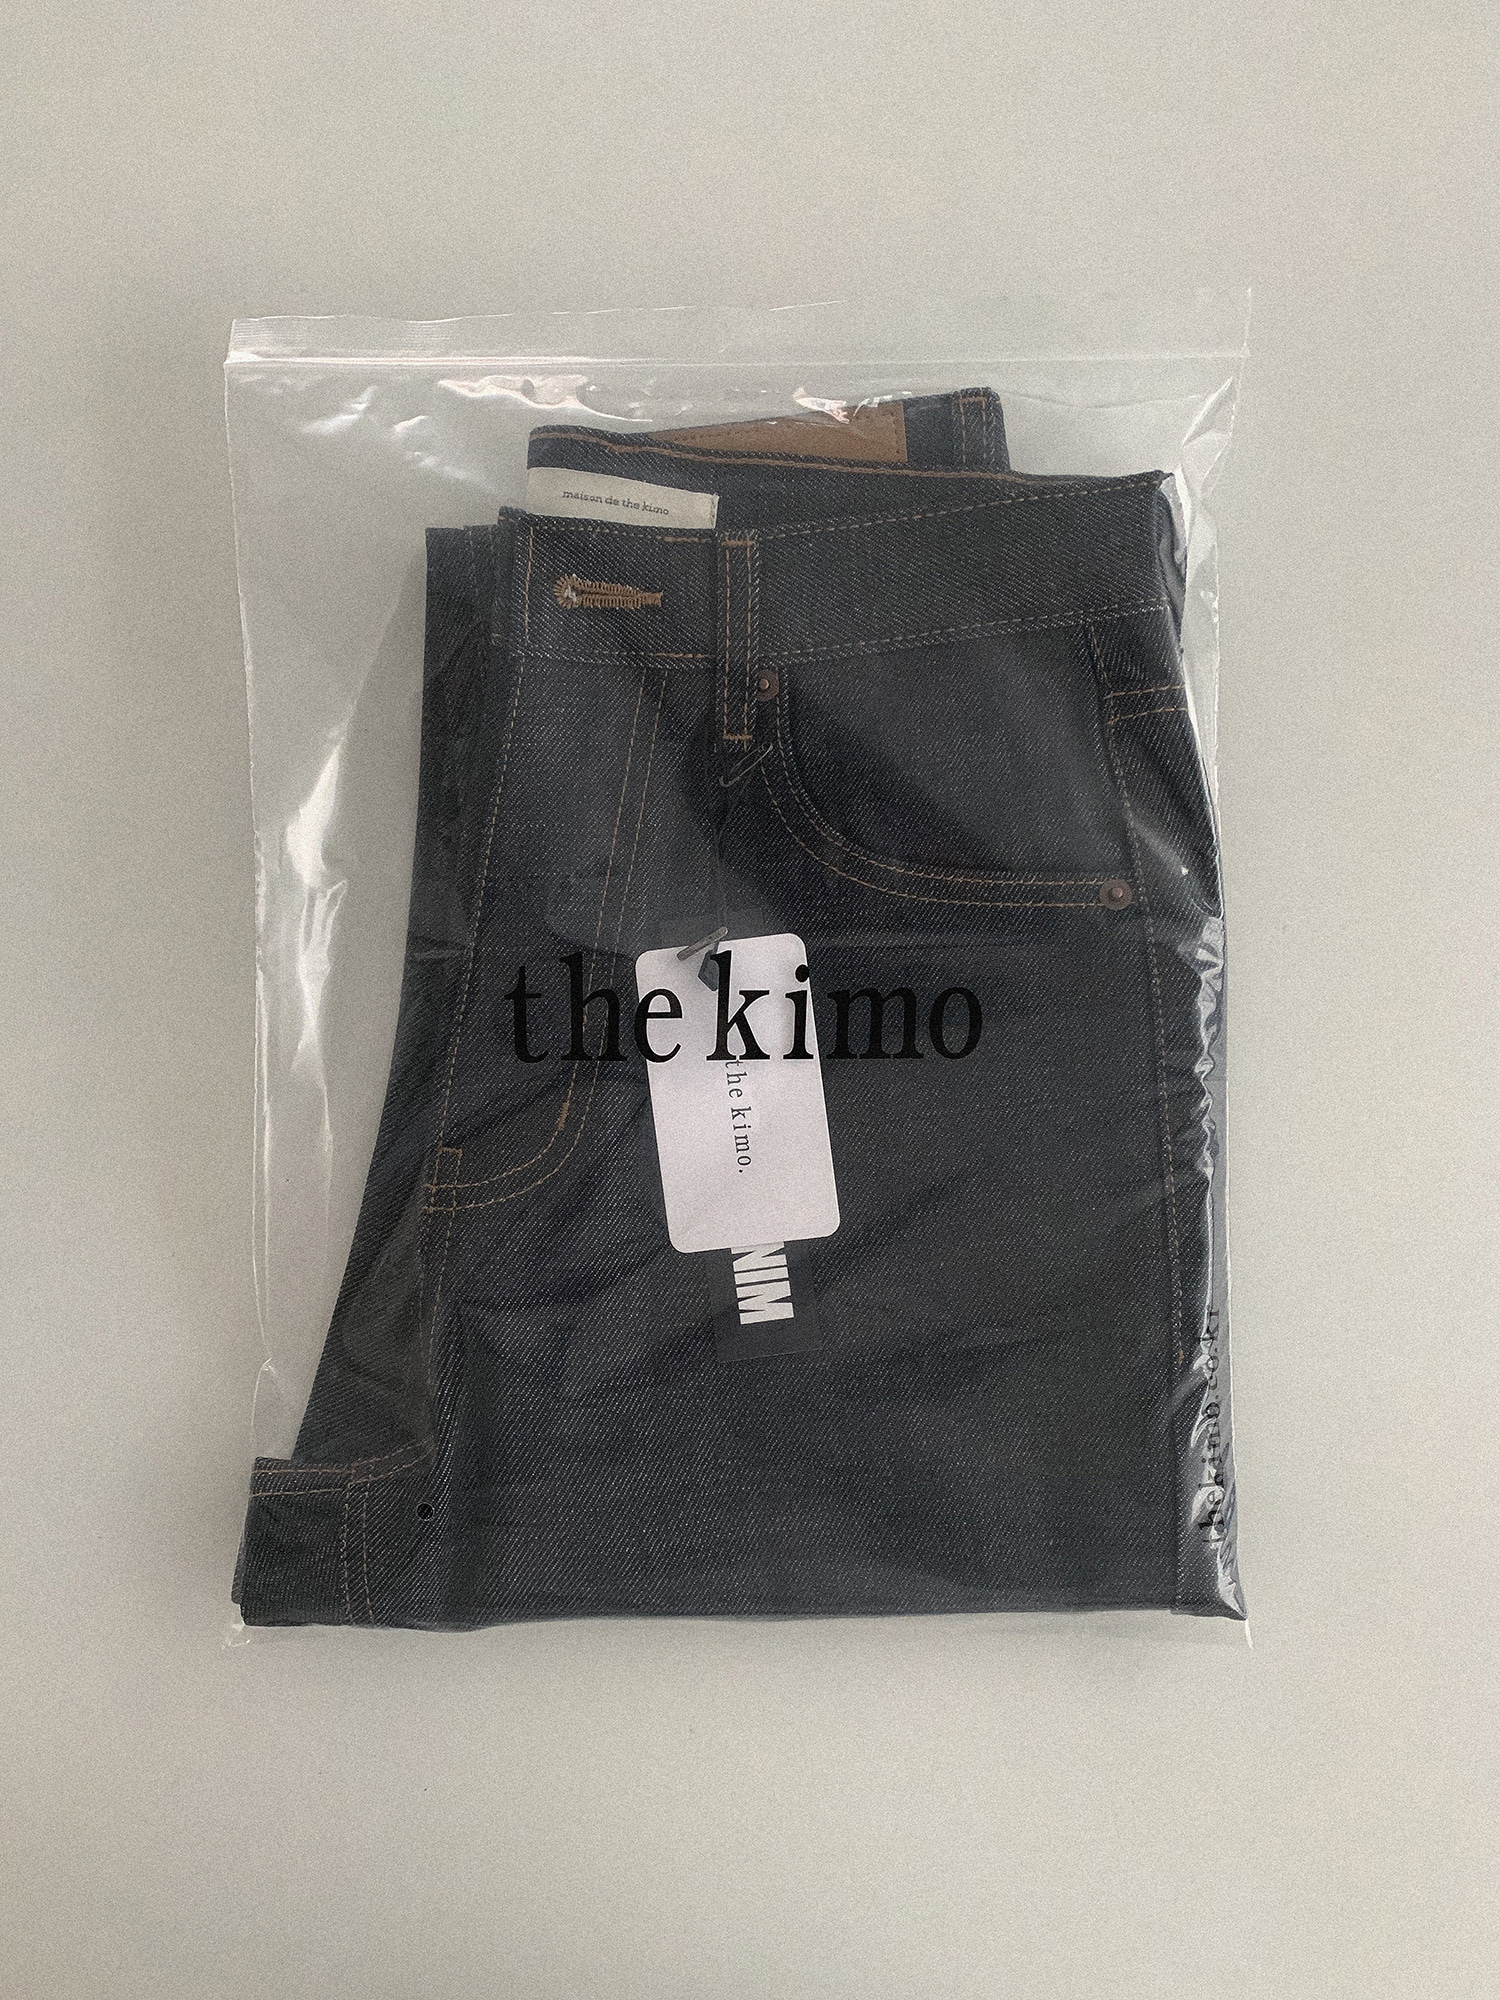 Nottinghill denim (3/1 restock)